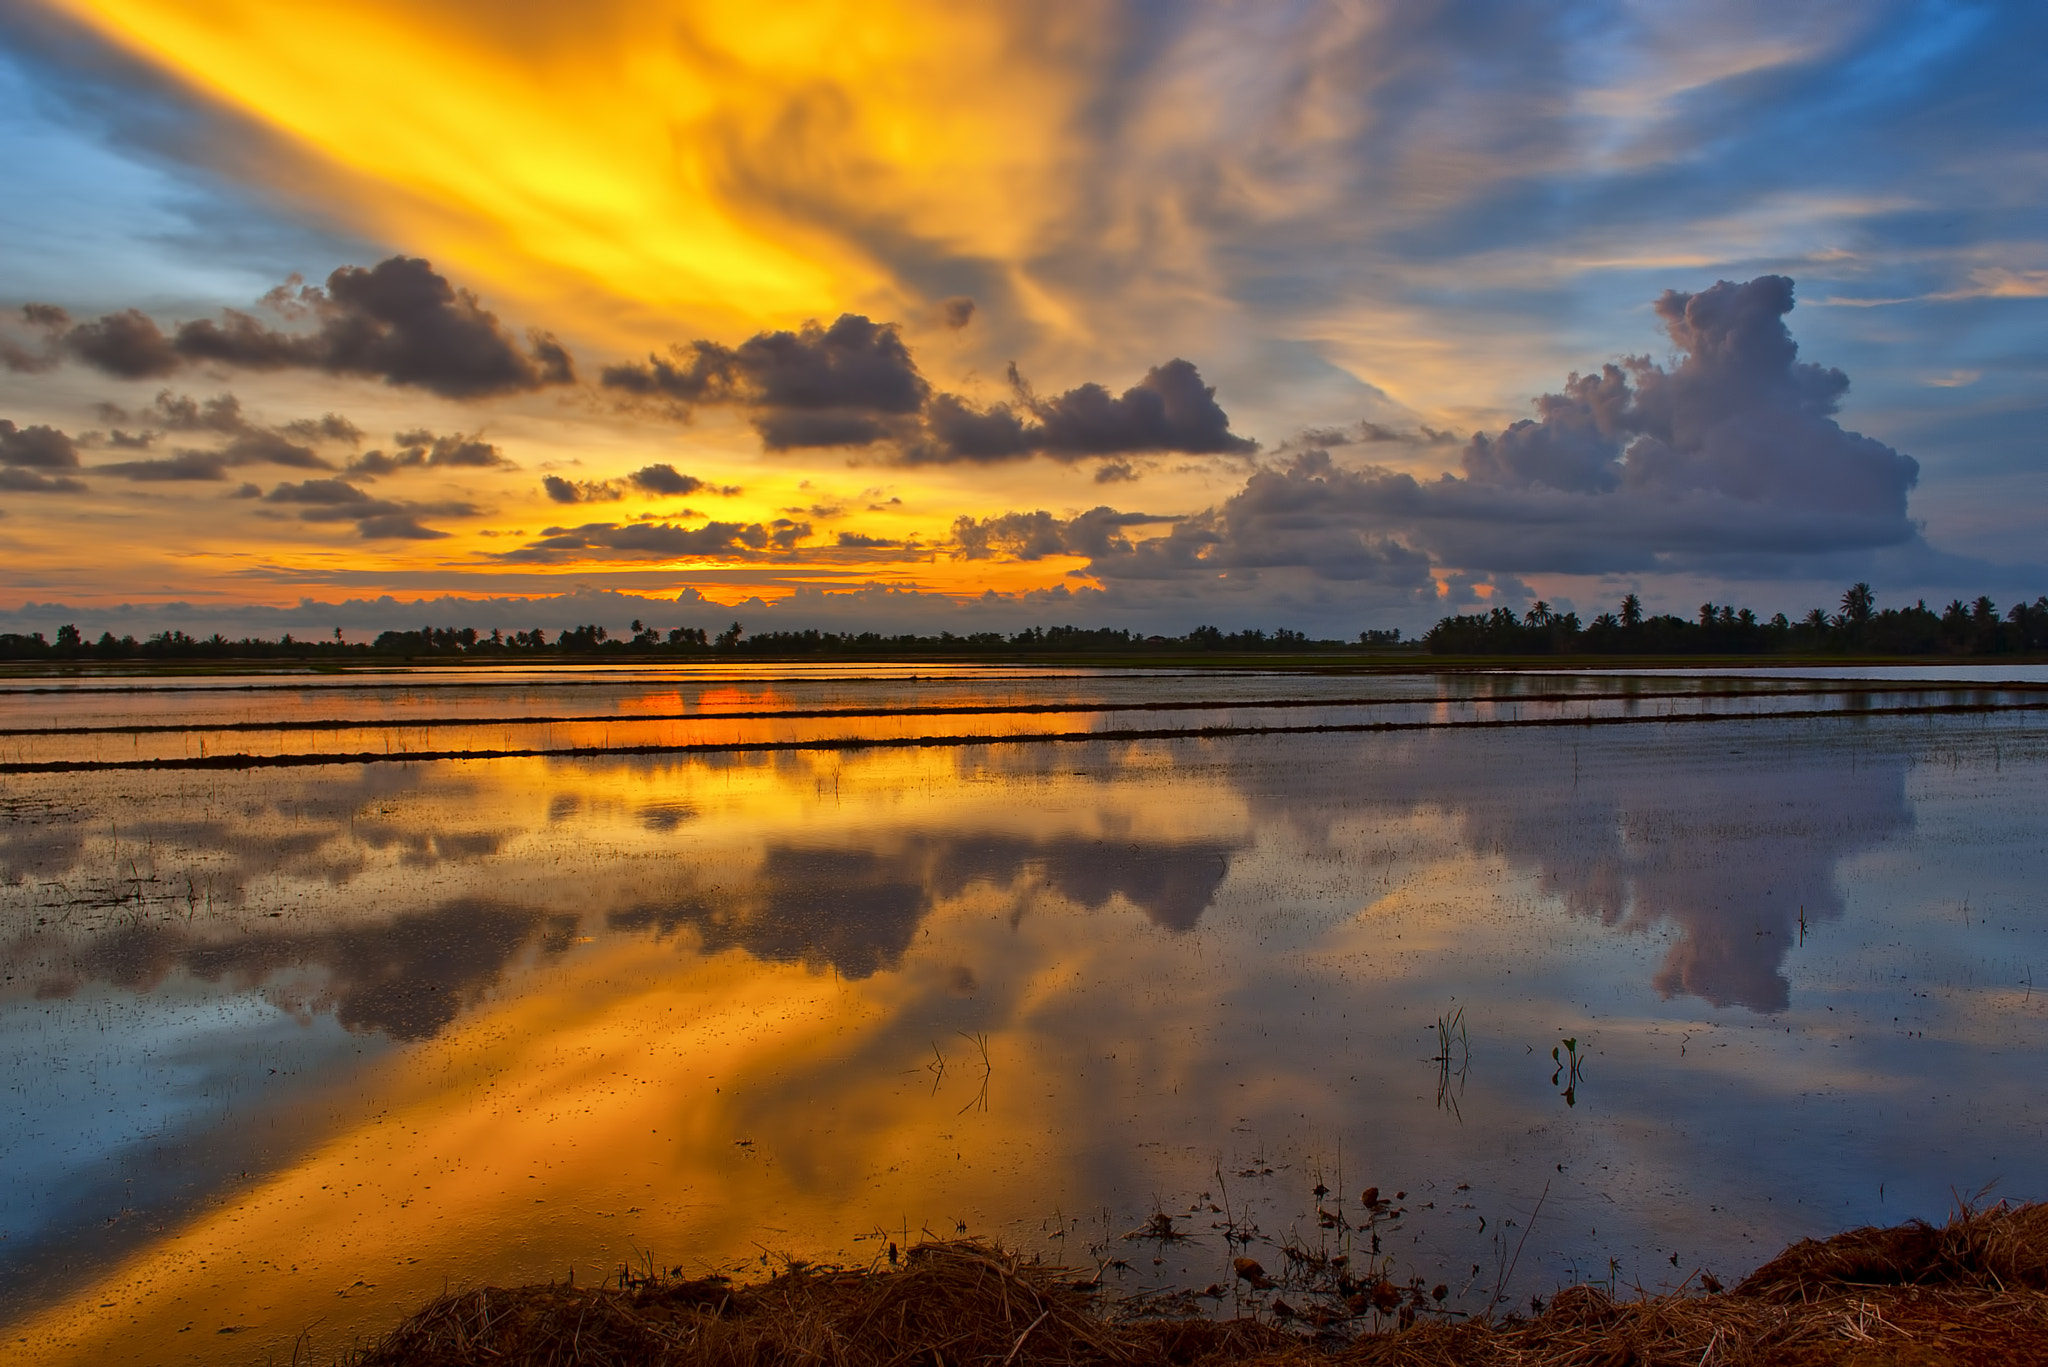 Photograph Mirror of The Nature by Aismat Azizan on 500px